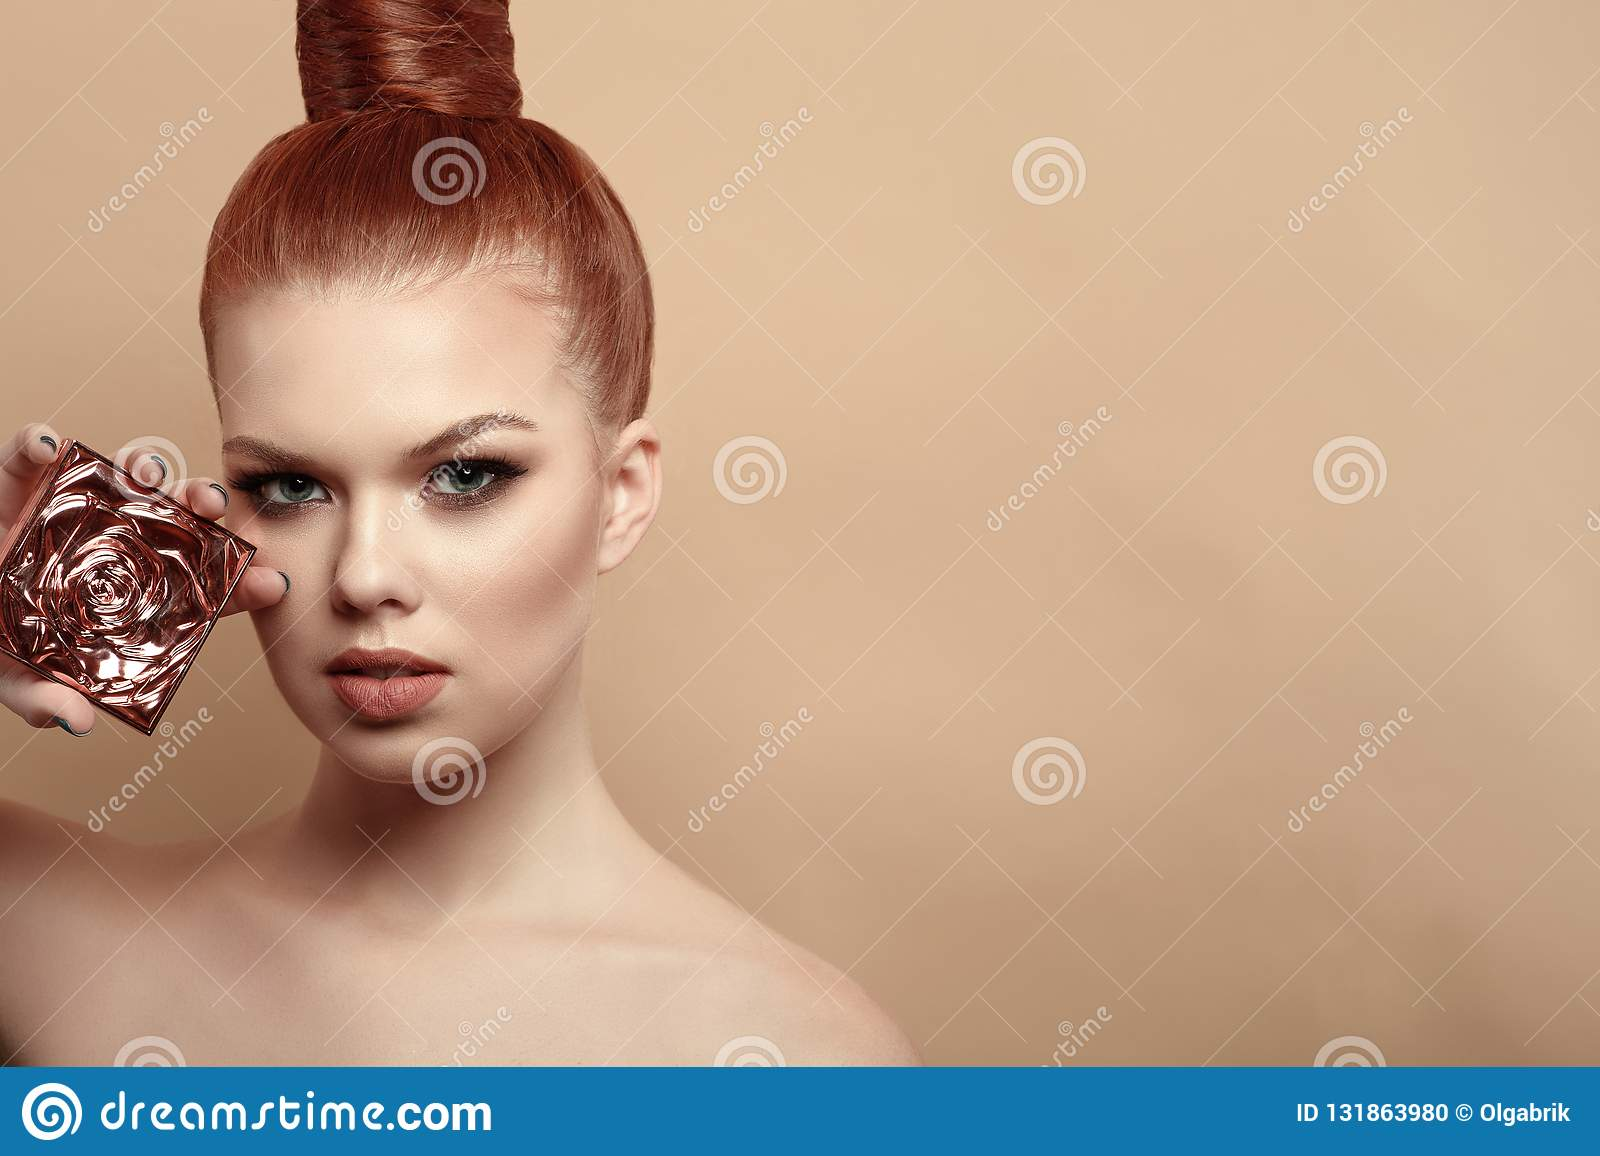 Close up portrait of beautiful red-haired woman with perfect make-up and hair scraped back into a high bun holding compact powder